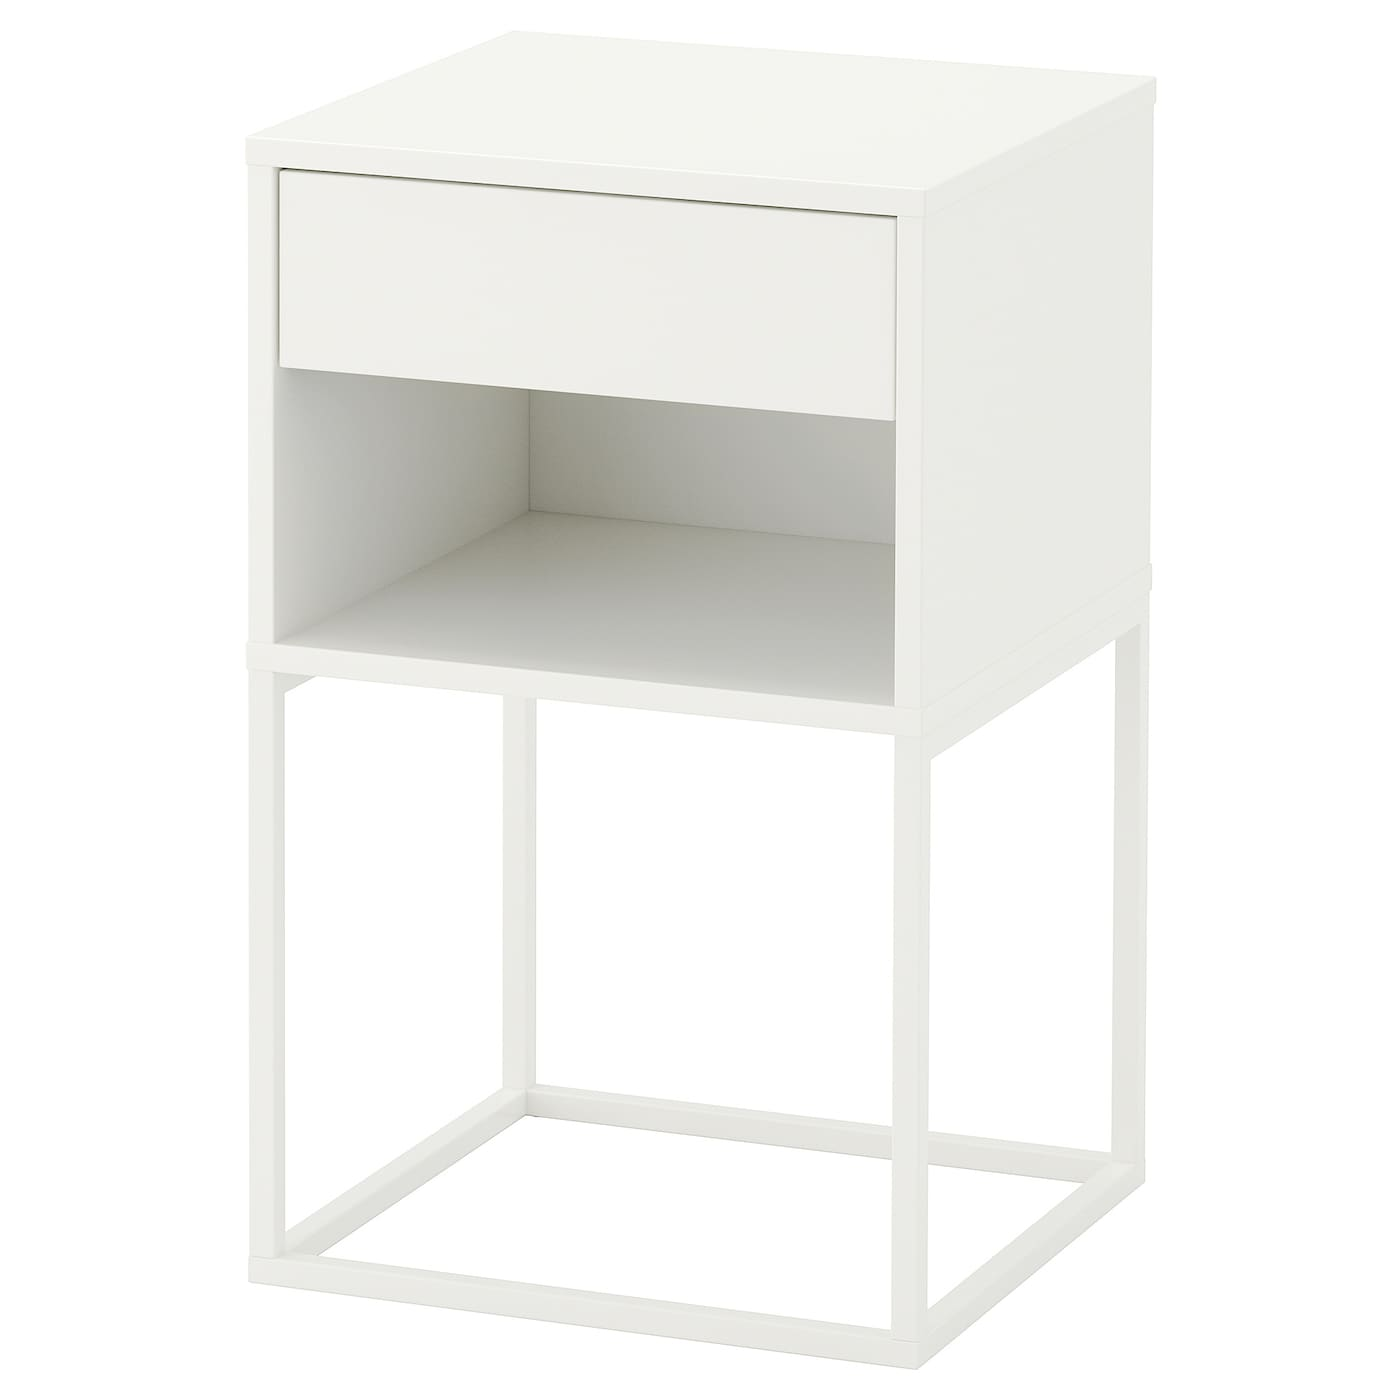 Bedside tables bedside cabinets ikea for Mesillas de forja ikea